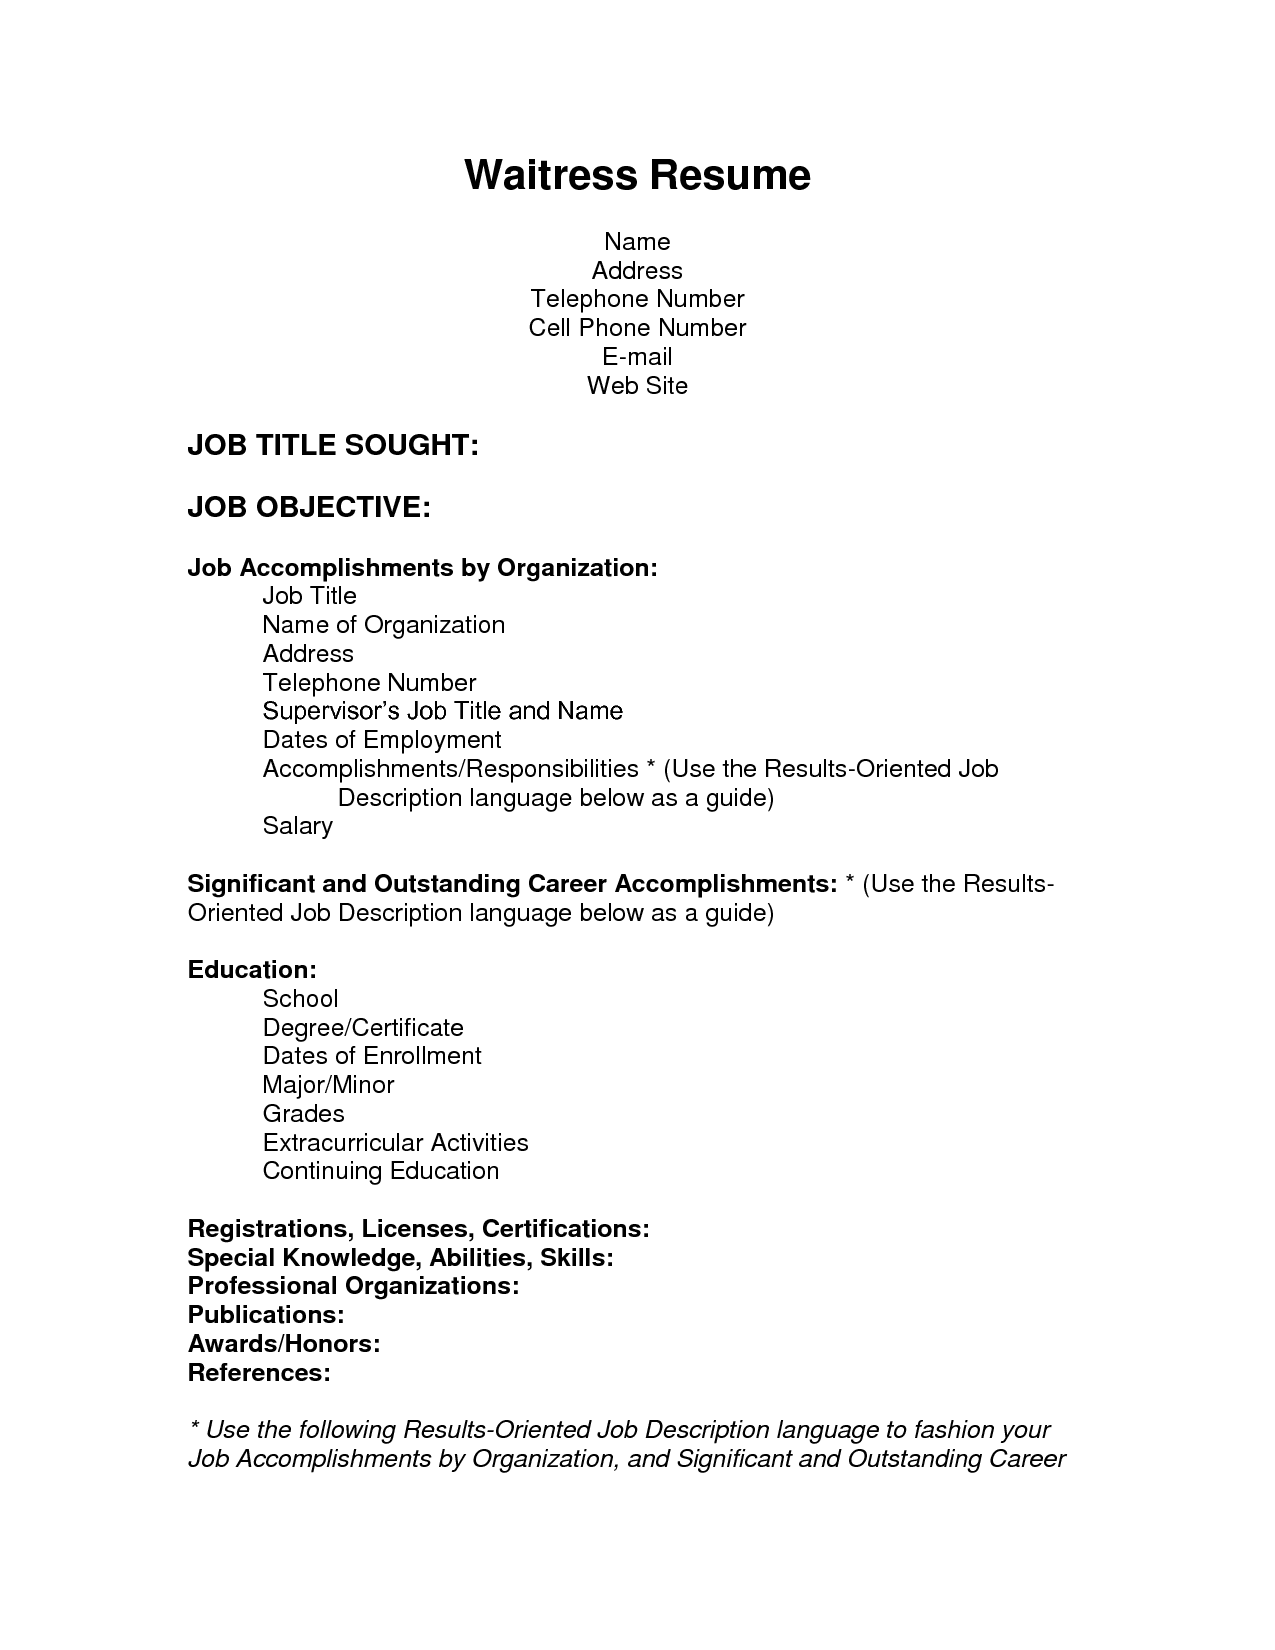 resume example for waitress Oylekalakaarico